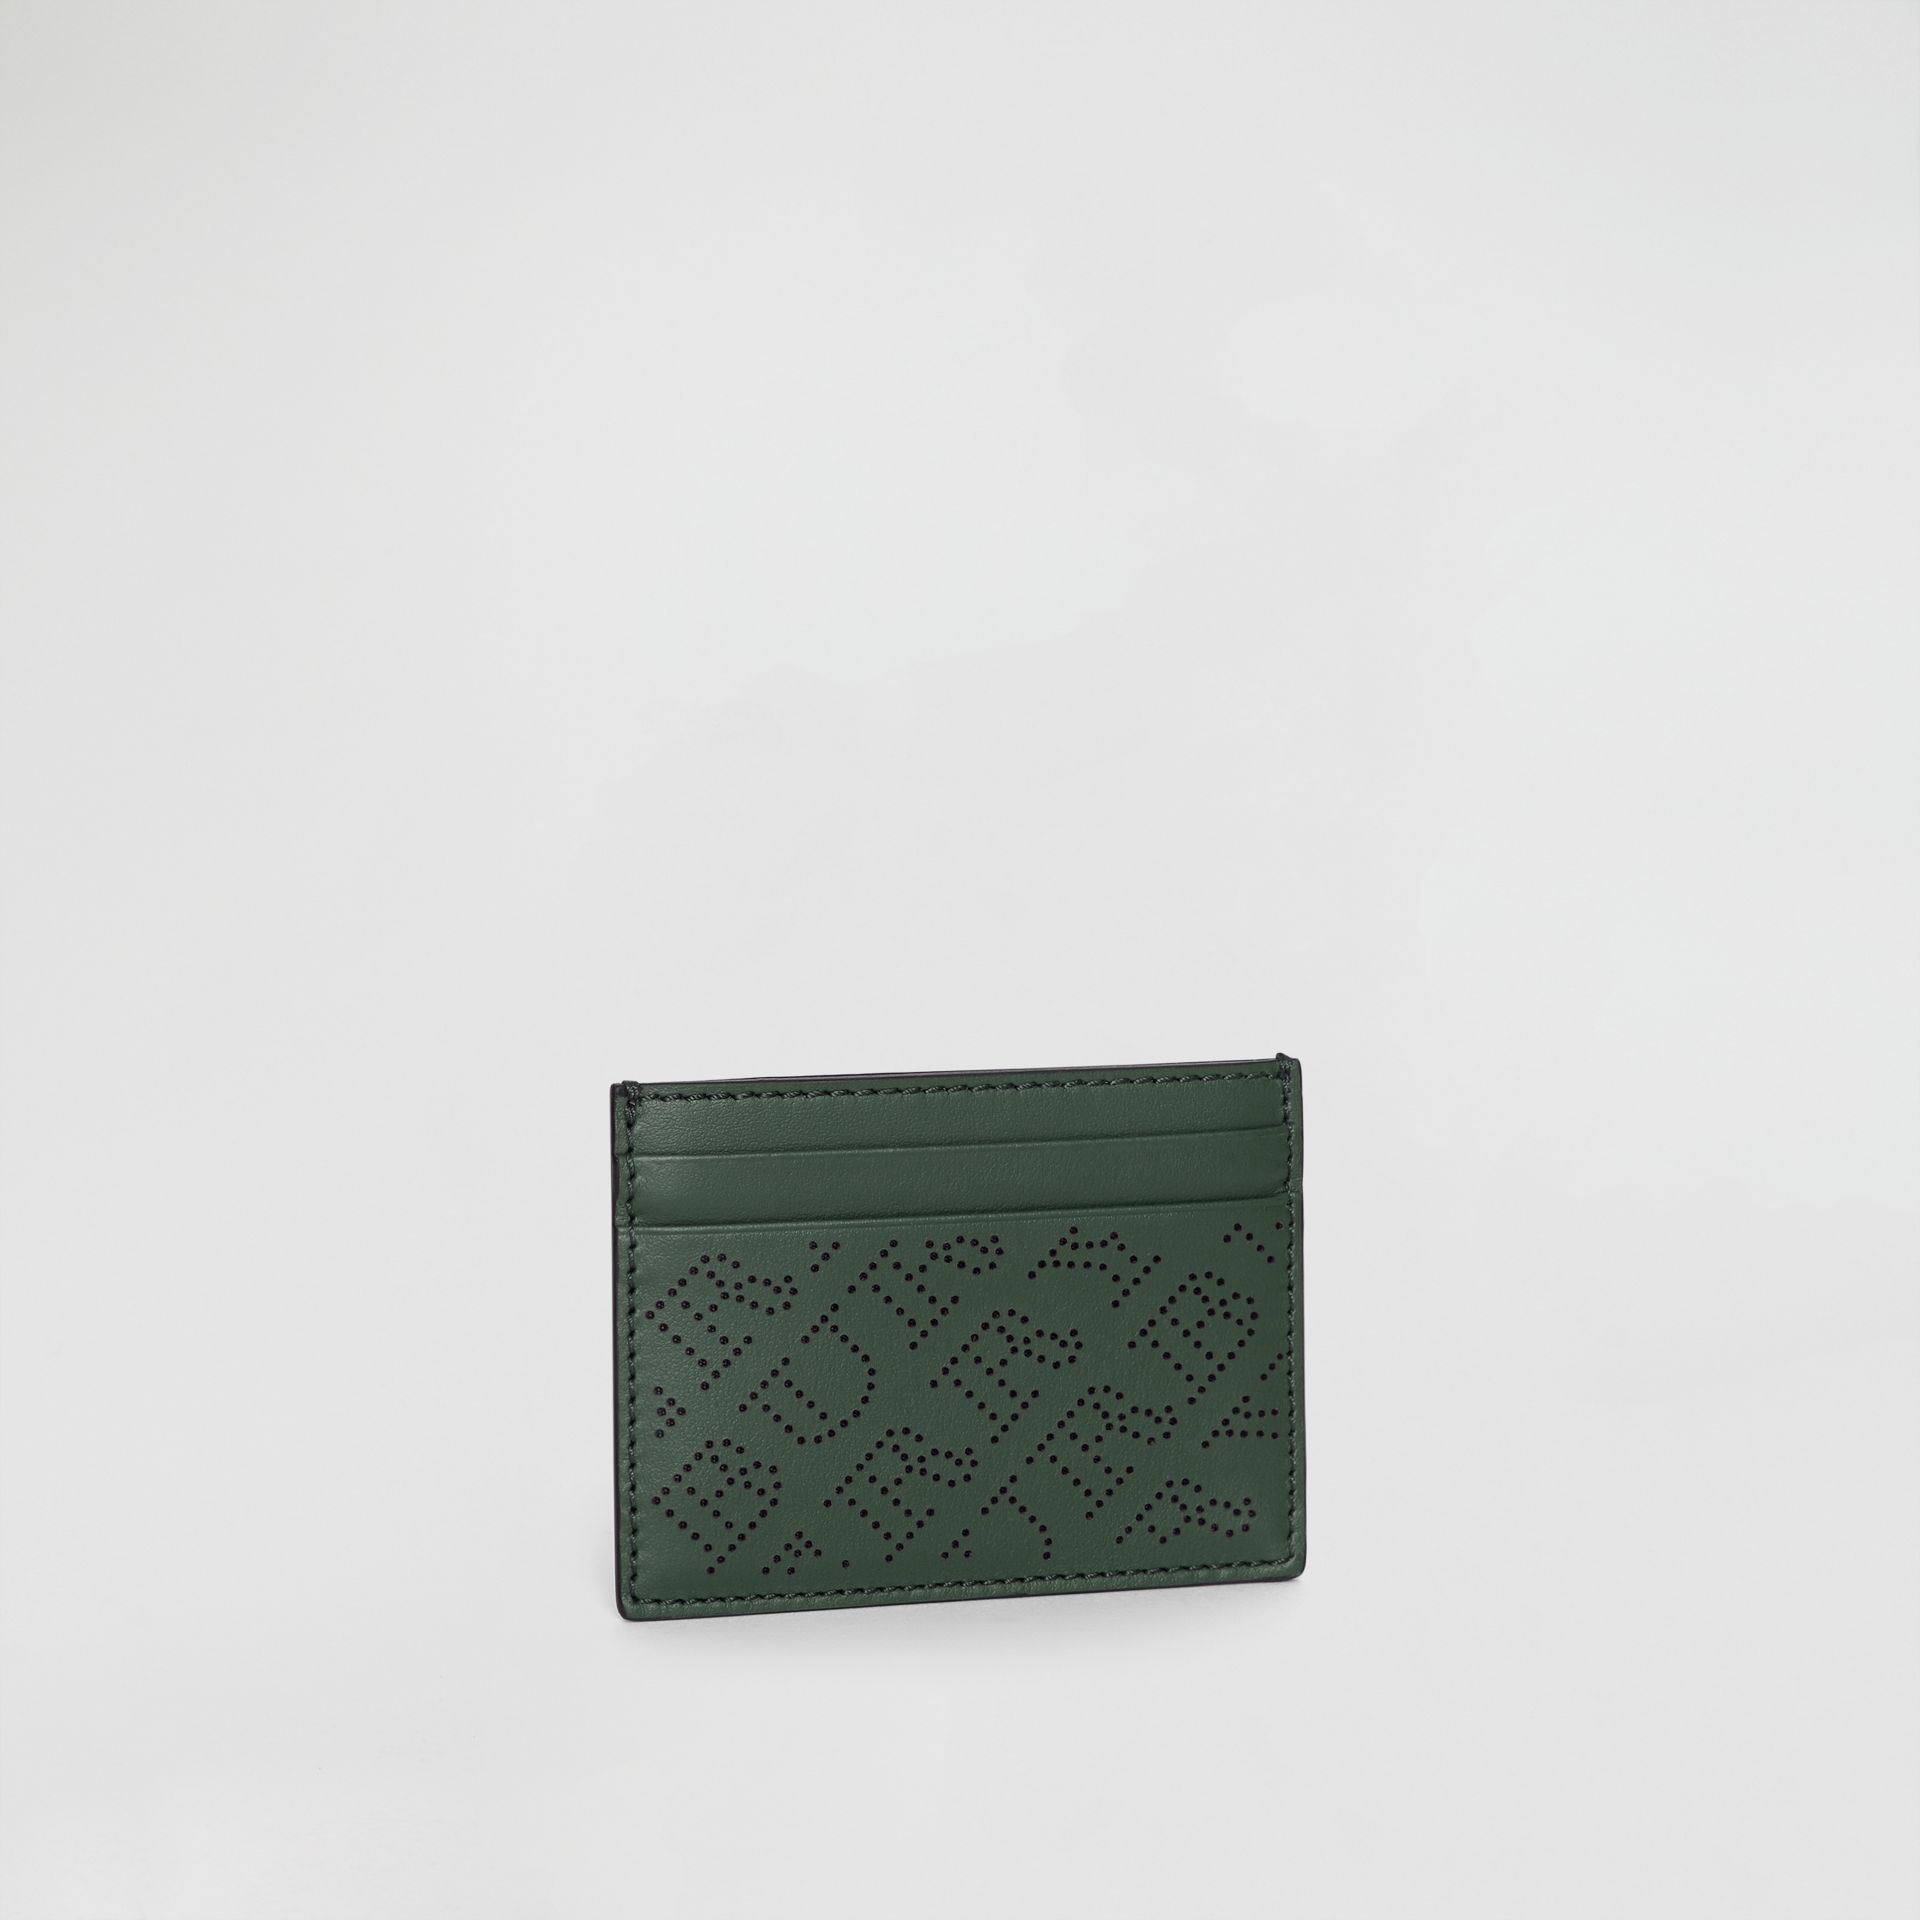 Perforated Logo Leather Card Case in Vintage Green - Women | Burberry United Kingdom - gallery image 4